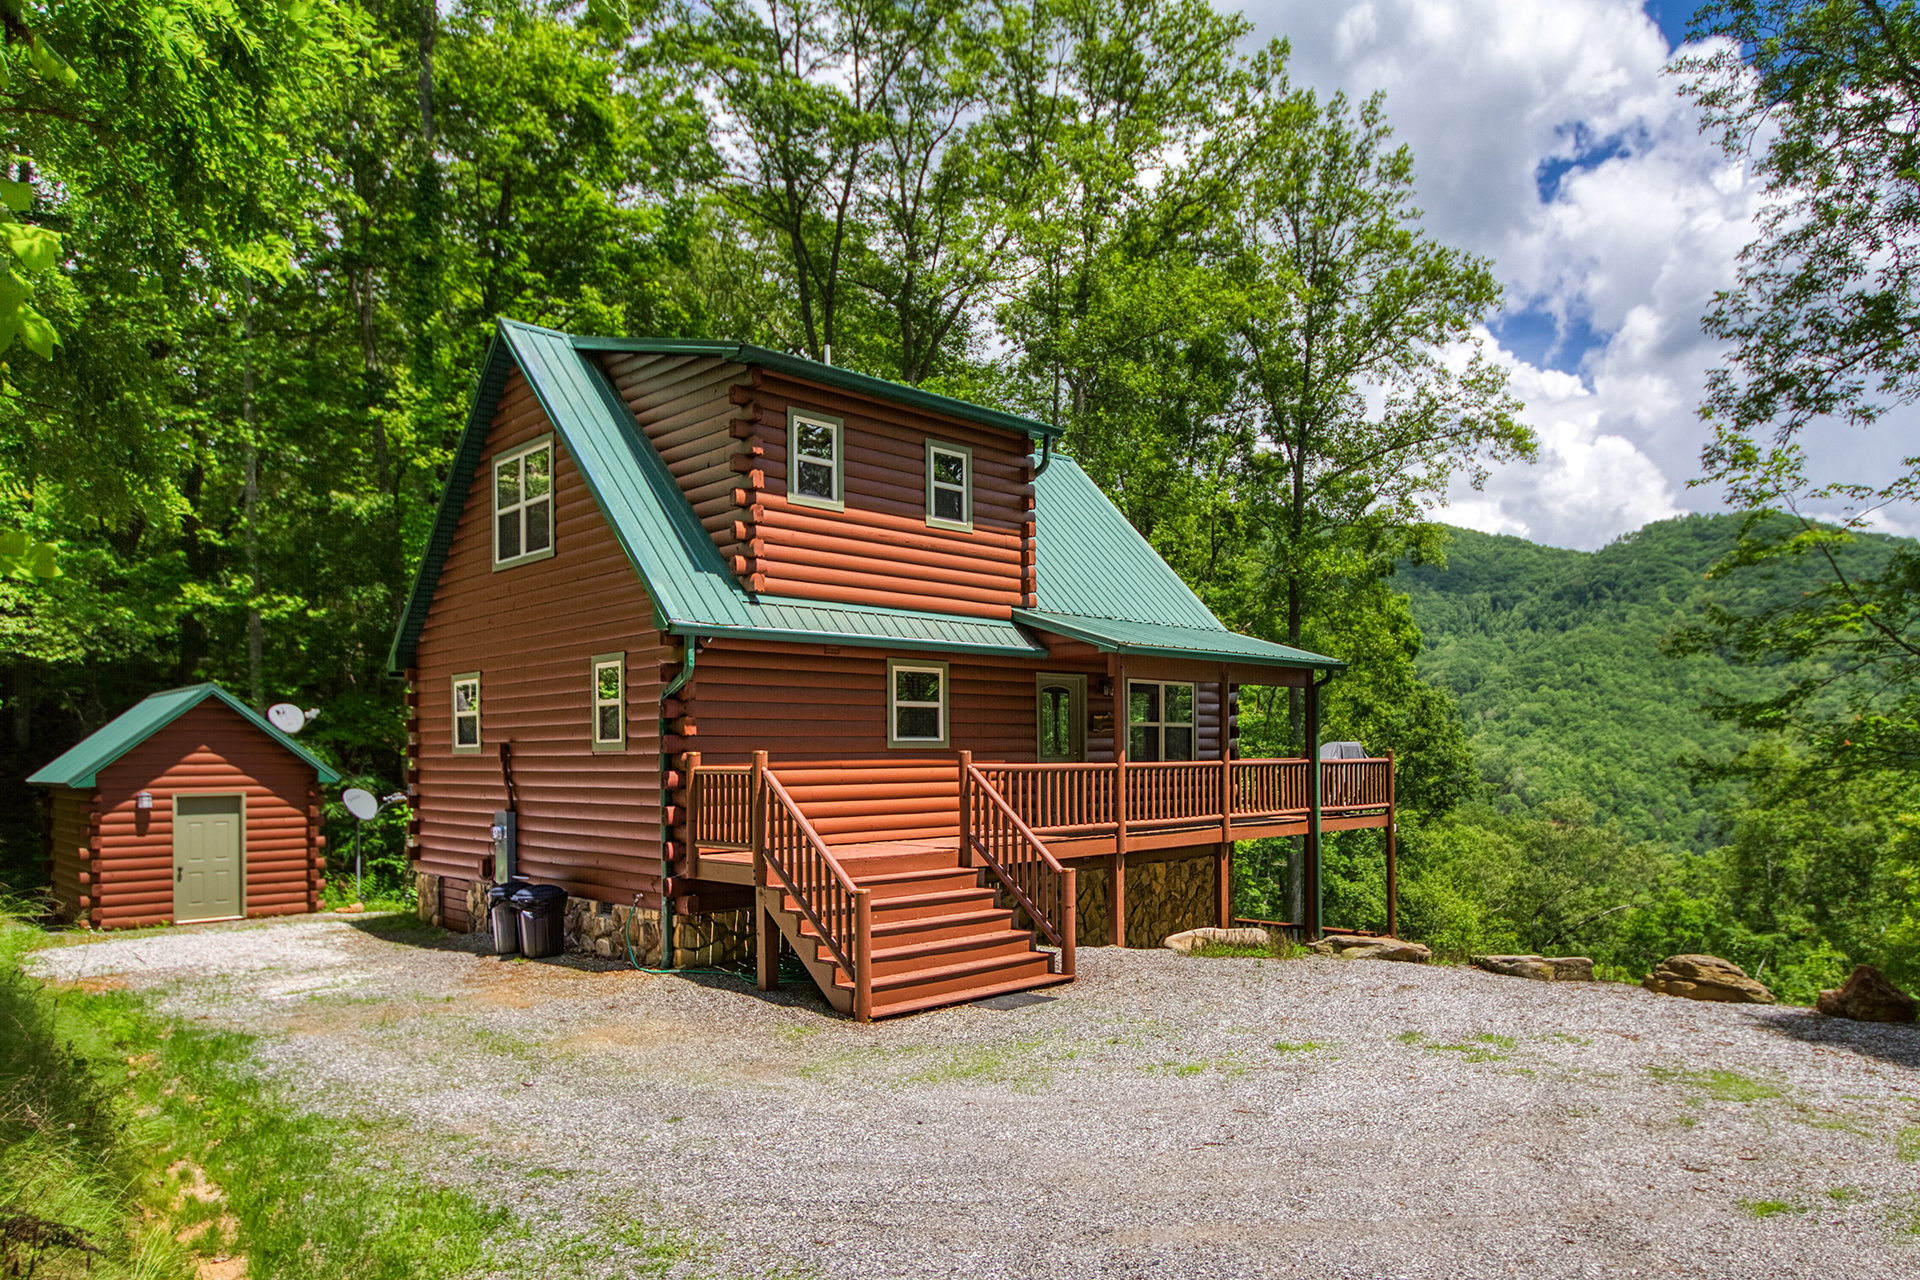 Secluded nc mountain cabin rental by carolina mountain for Smoky mountain nc cabin rentals